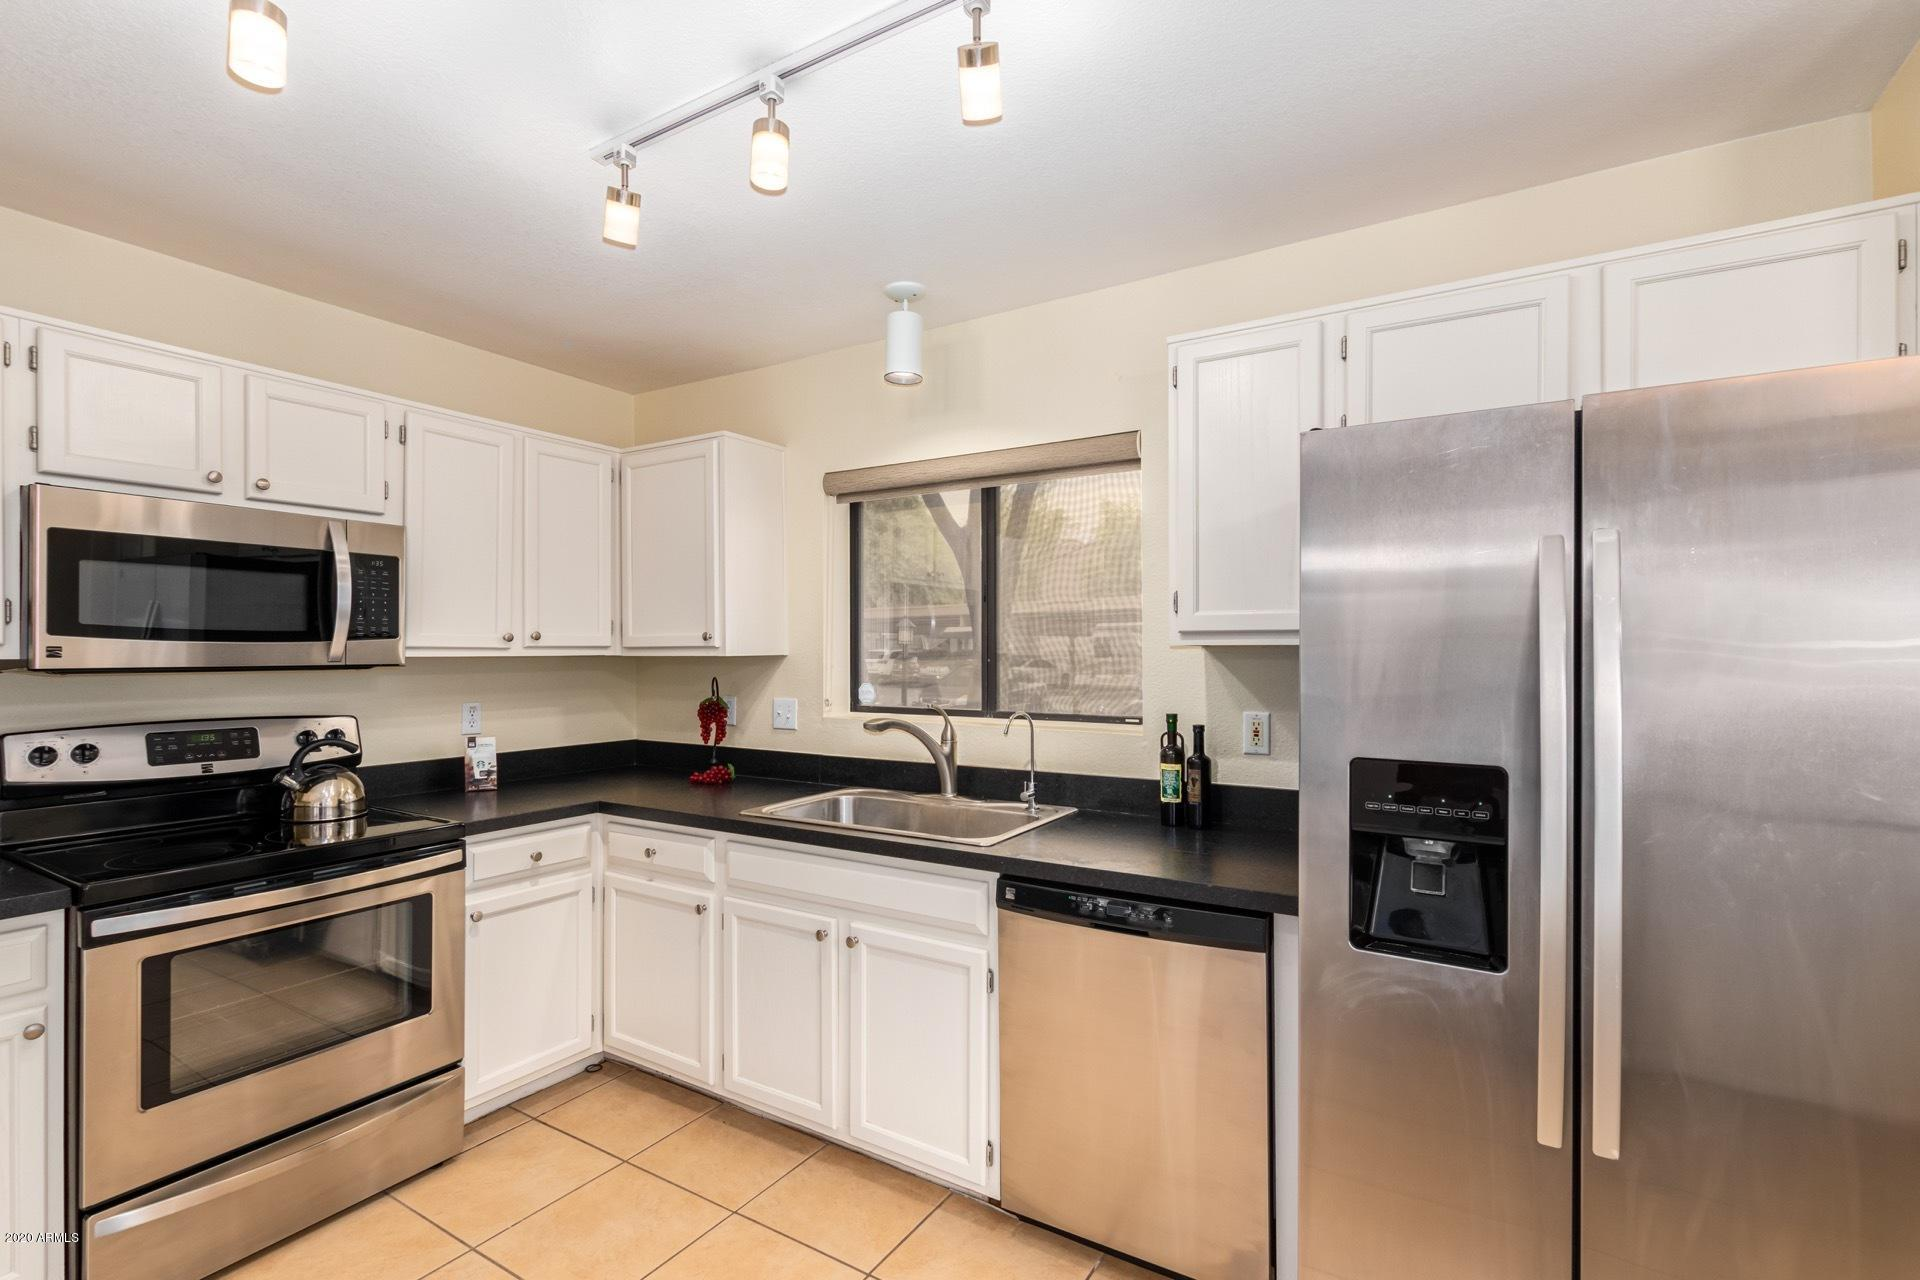 Photo #3: Stainless steel appliances